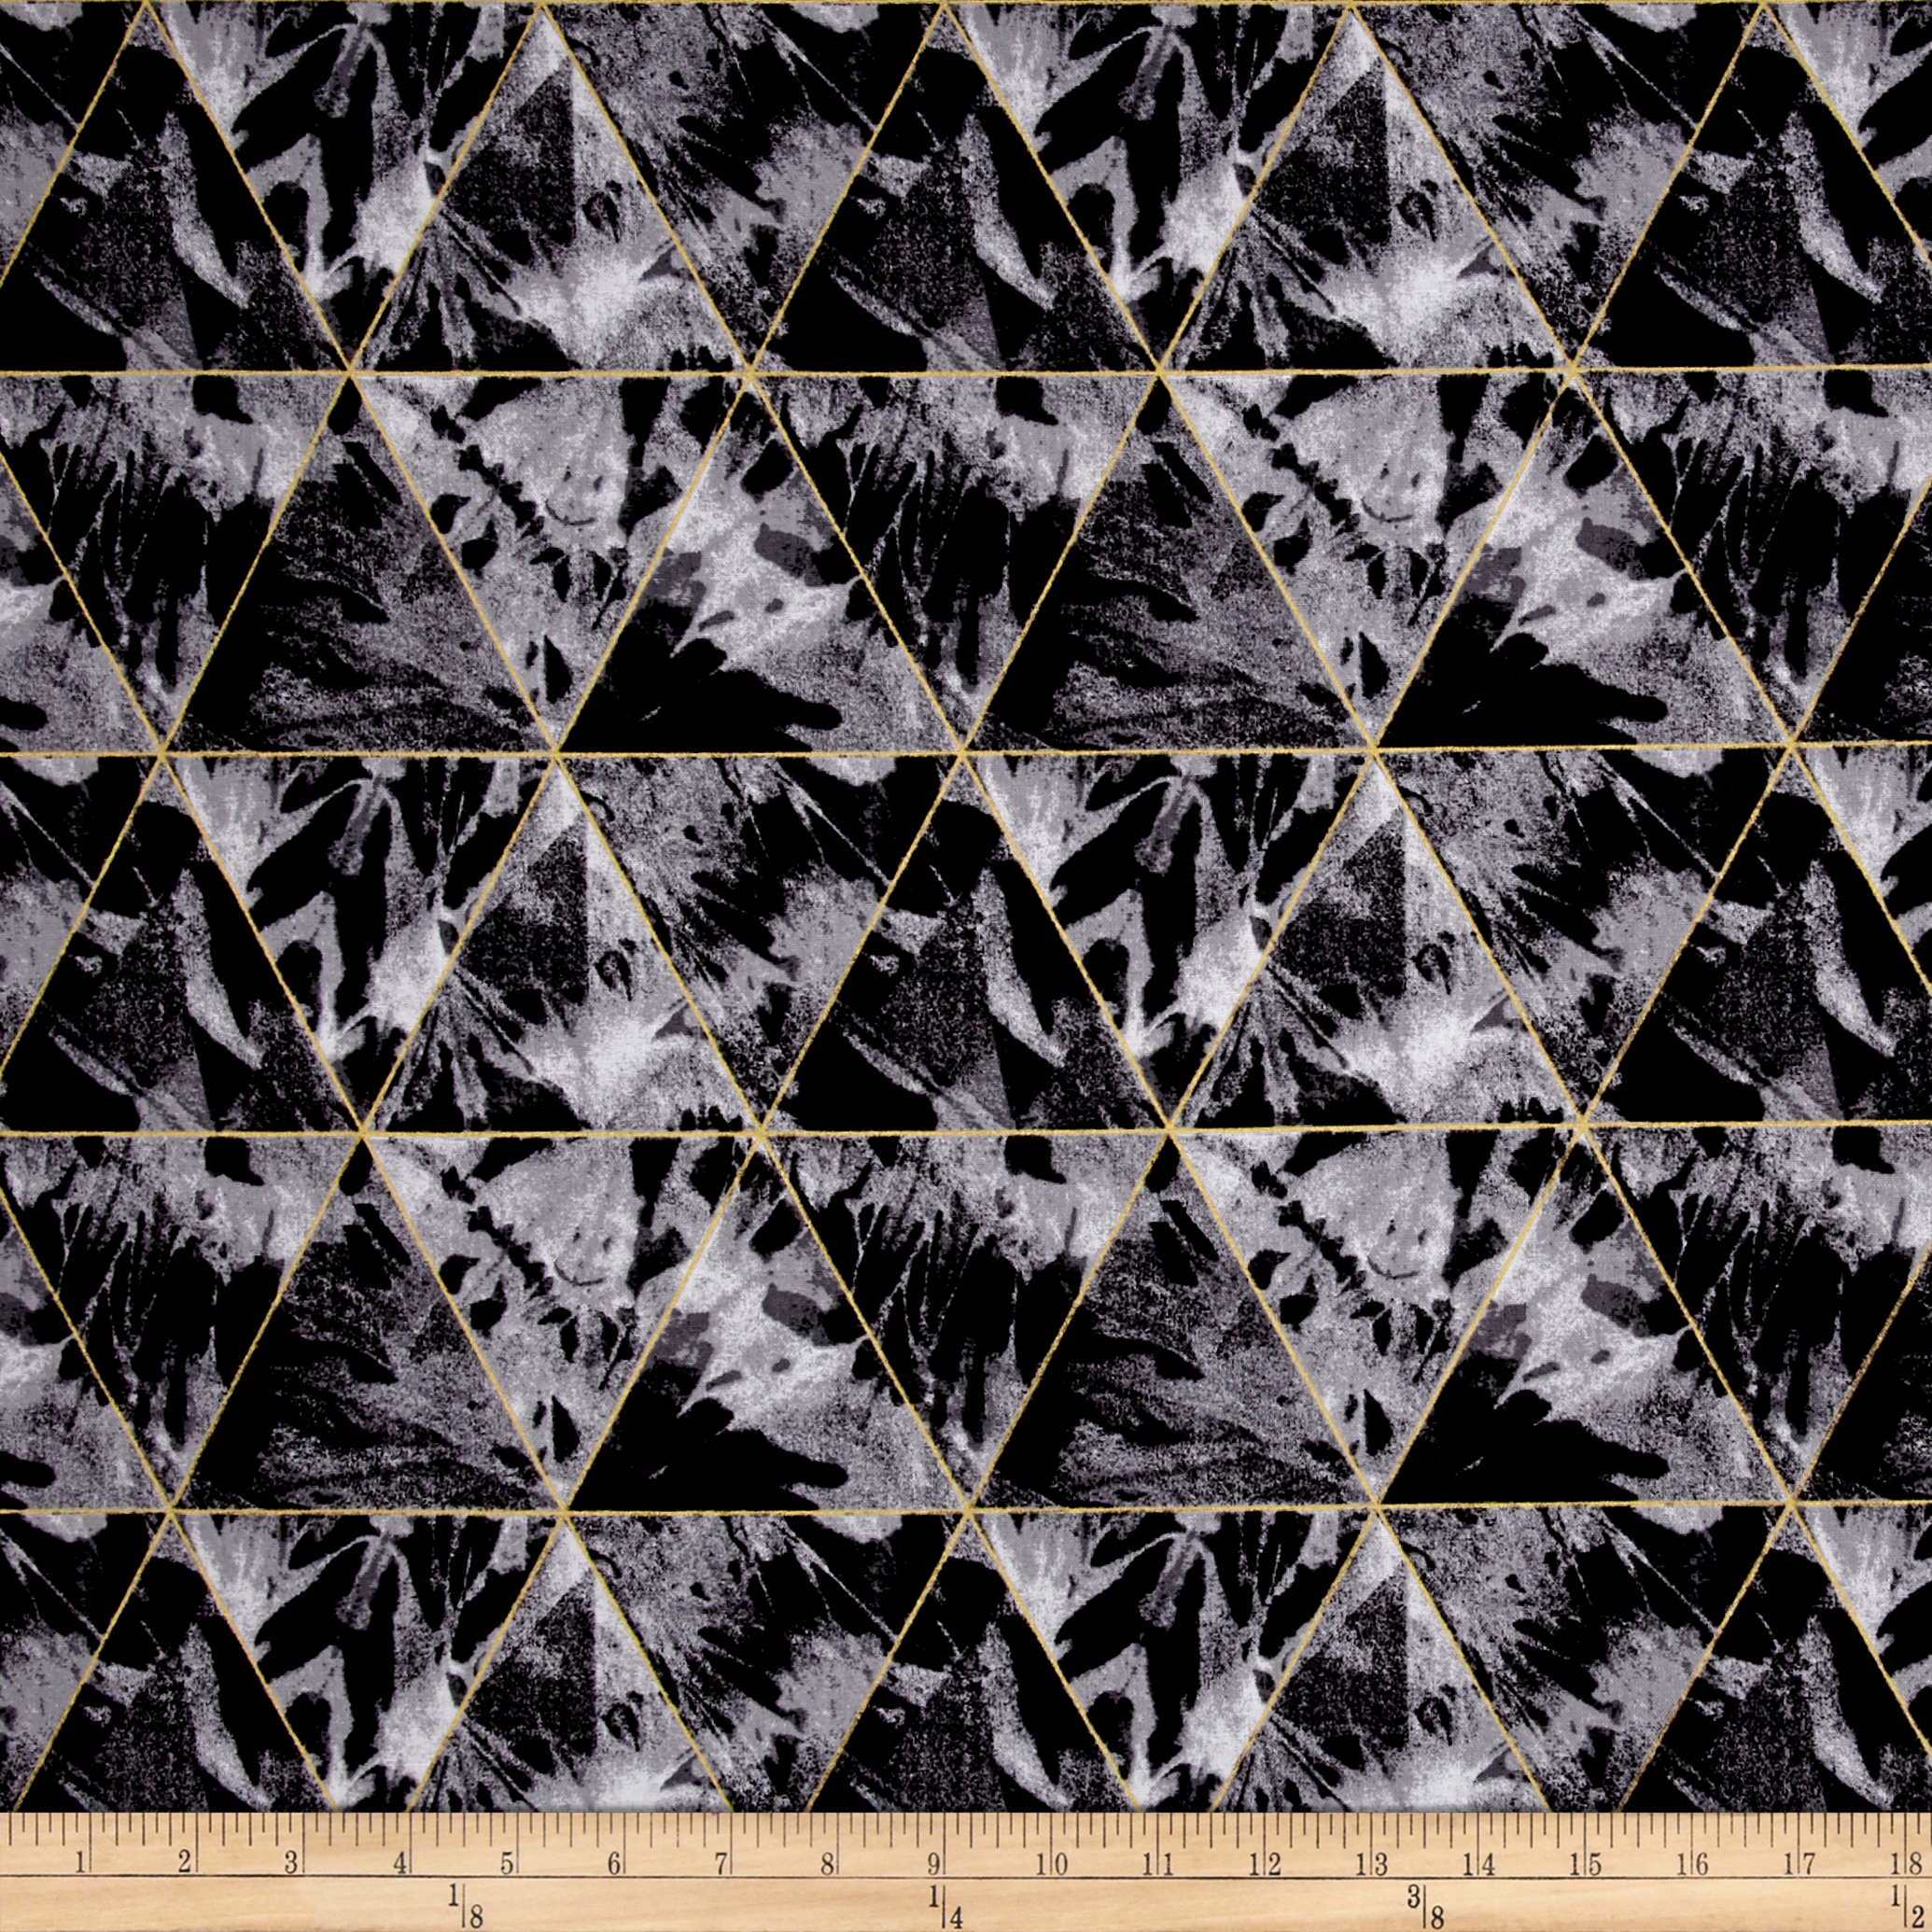 Andover When Sparks Fly Metallic Denim Dreams Concrete Fabric